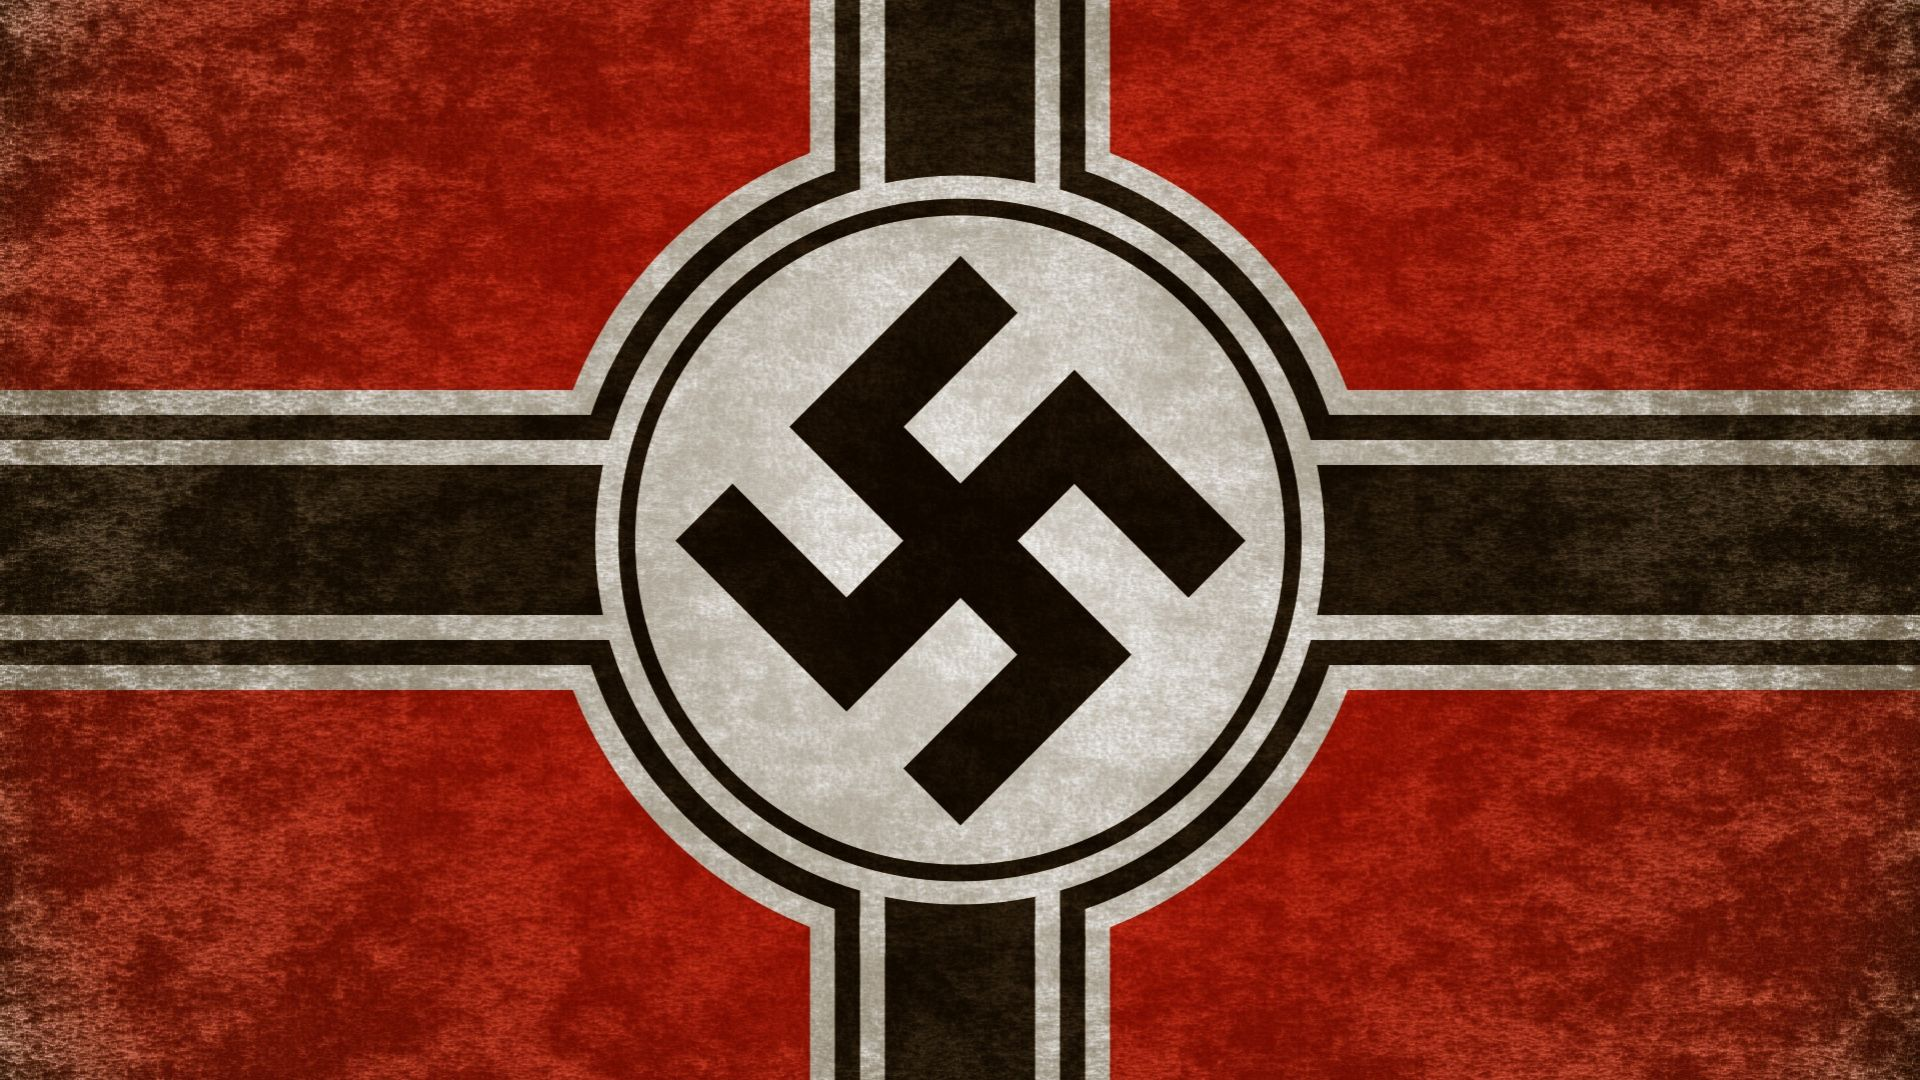 The swastika was a major emblem during world war 2 the emblem the swastika was a major emblem during world war 2 the emblem meant the support buycottarizona Gallery